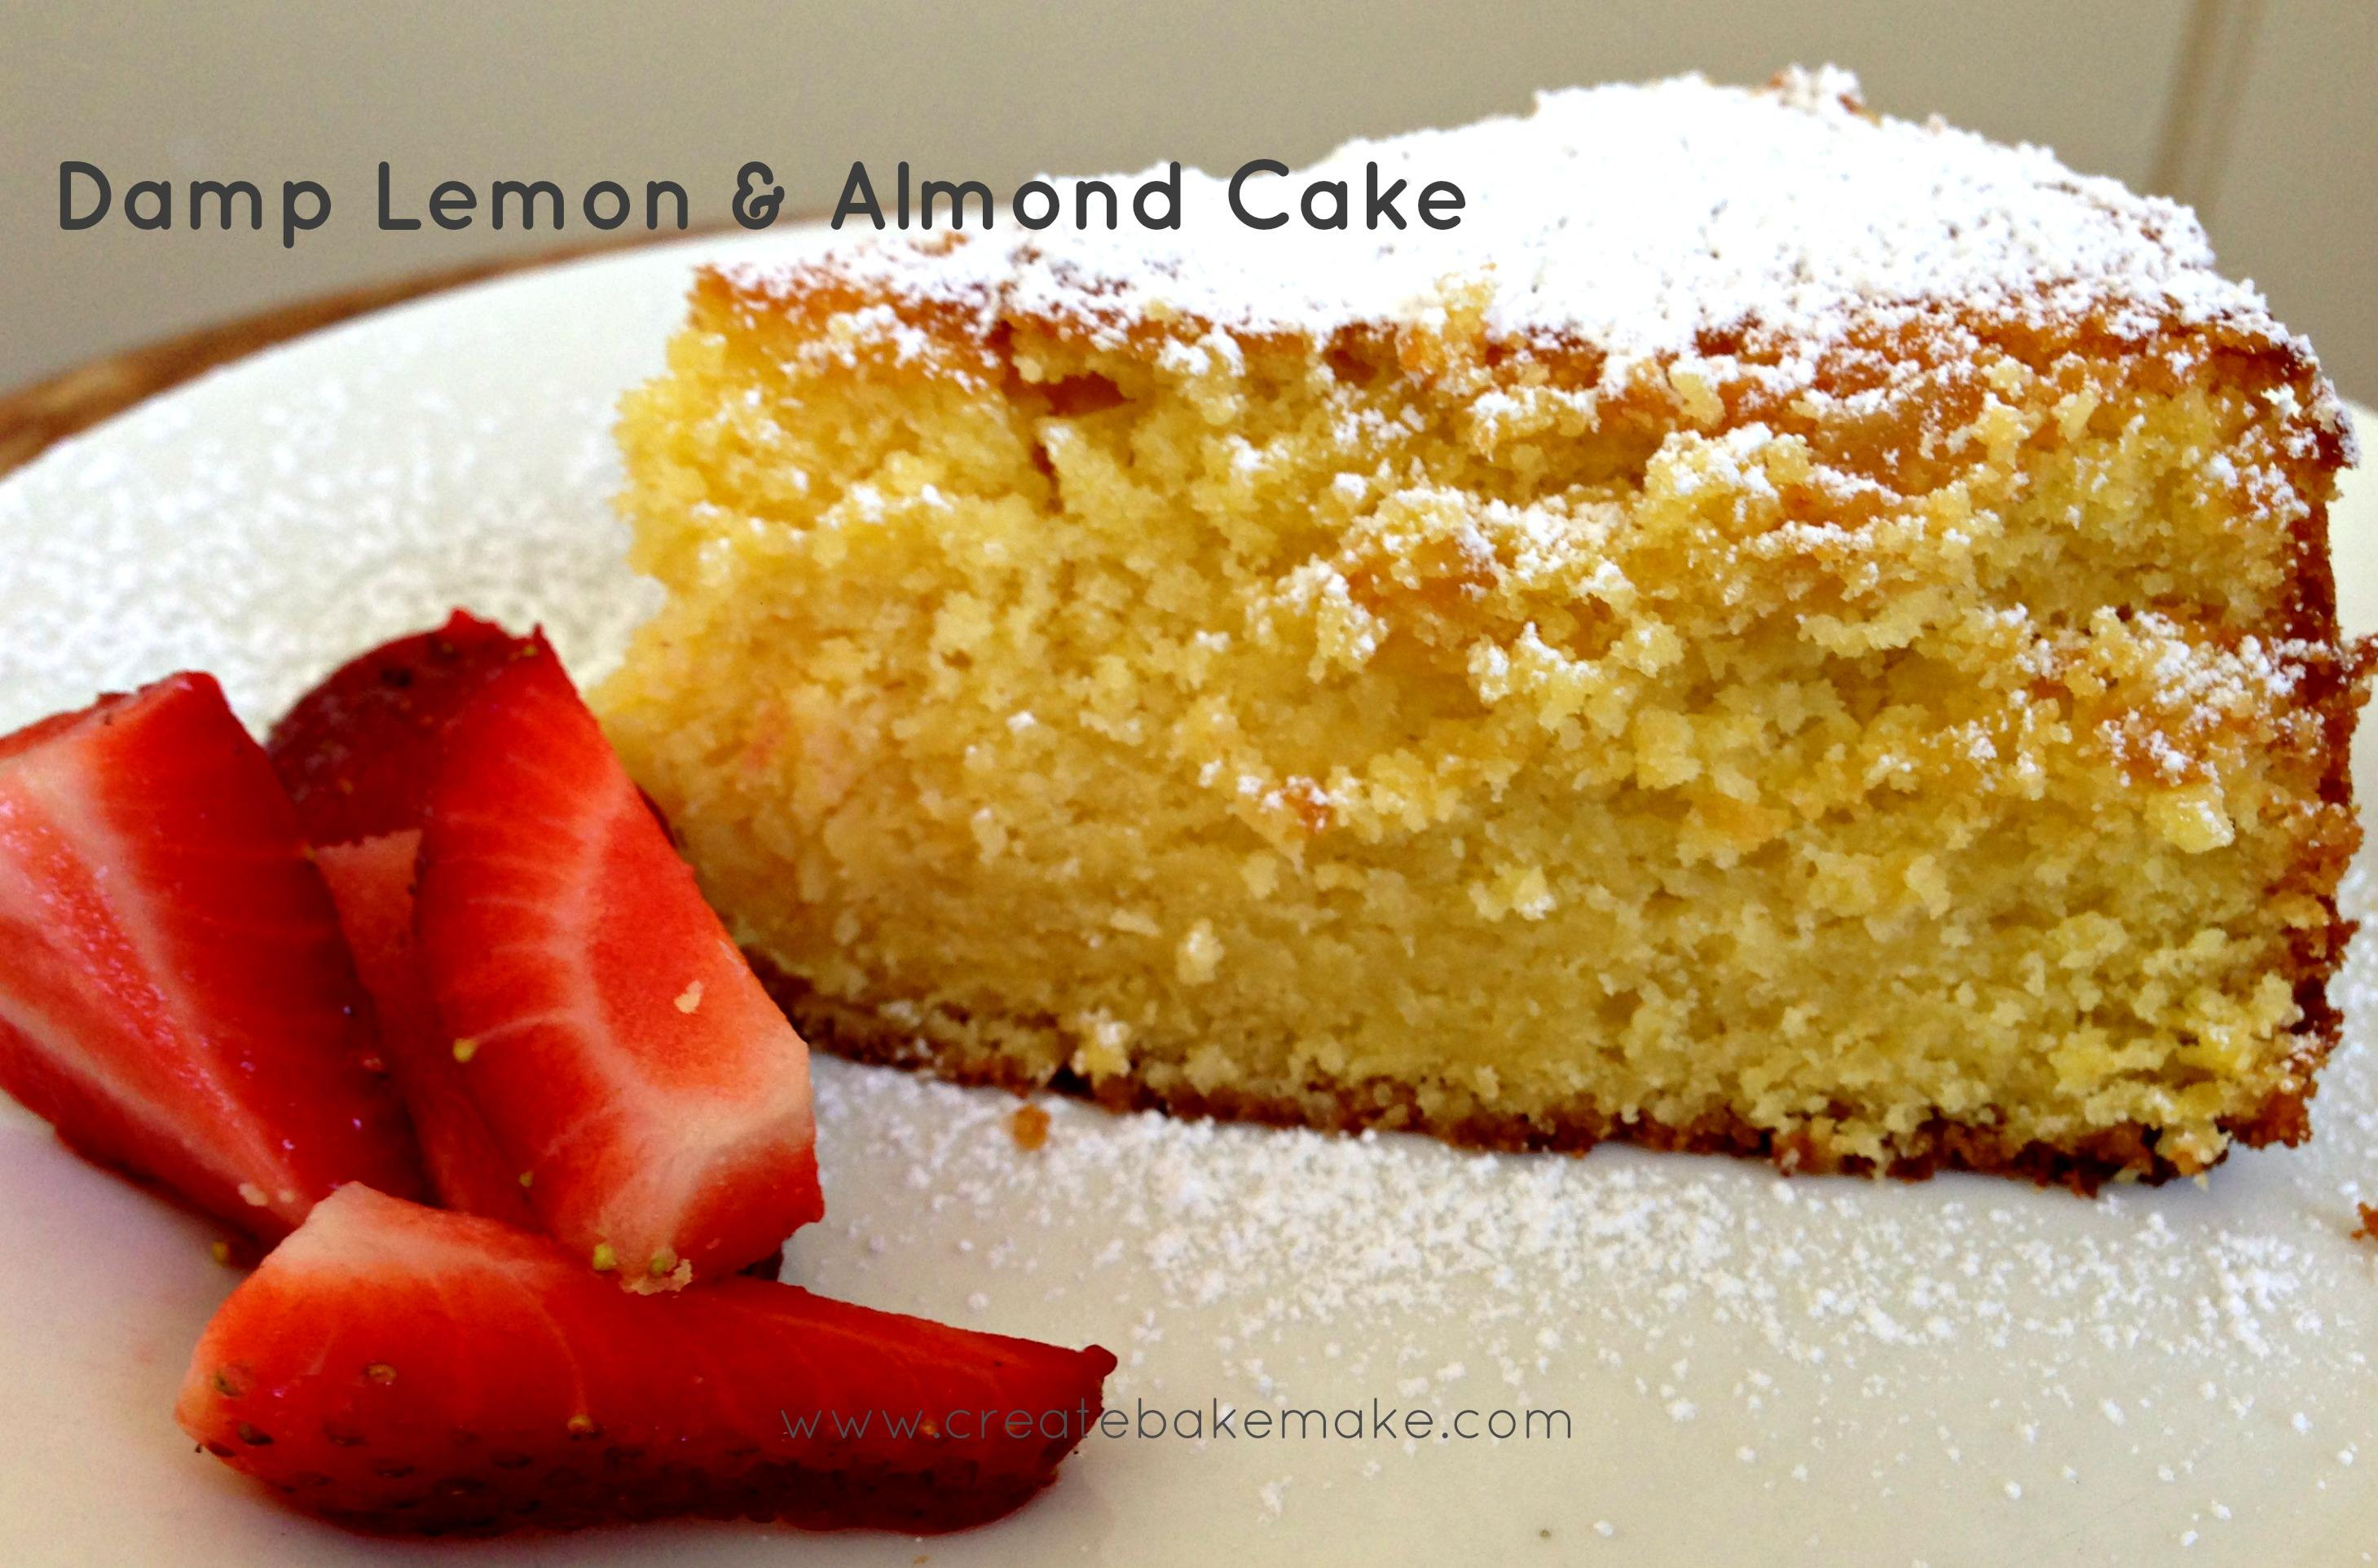 Nigella Lawson's Damp Lemon & Almond Cake (from How to be a Domestic ...